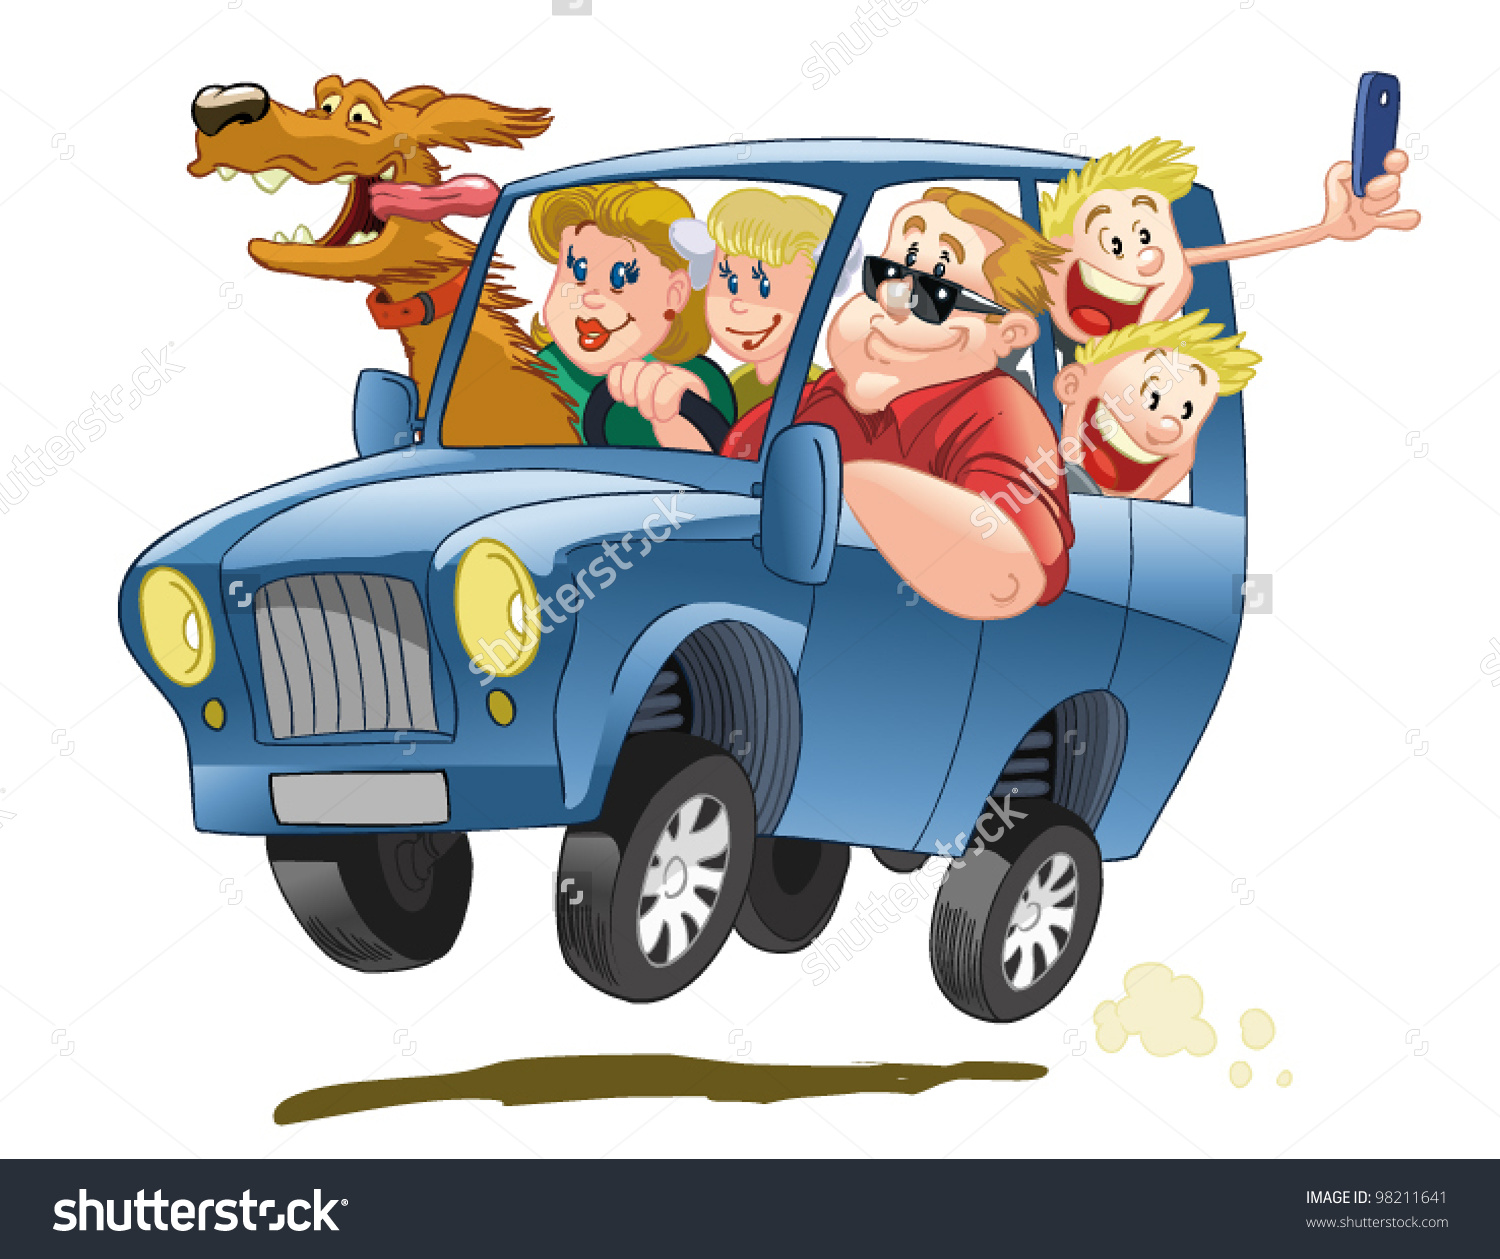 Clipart car with people.